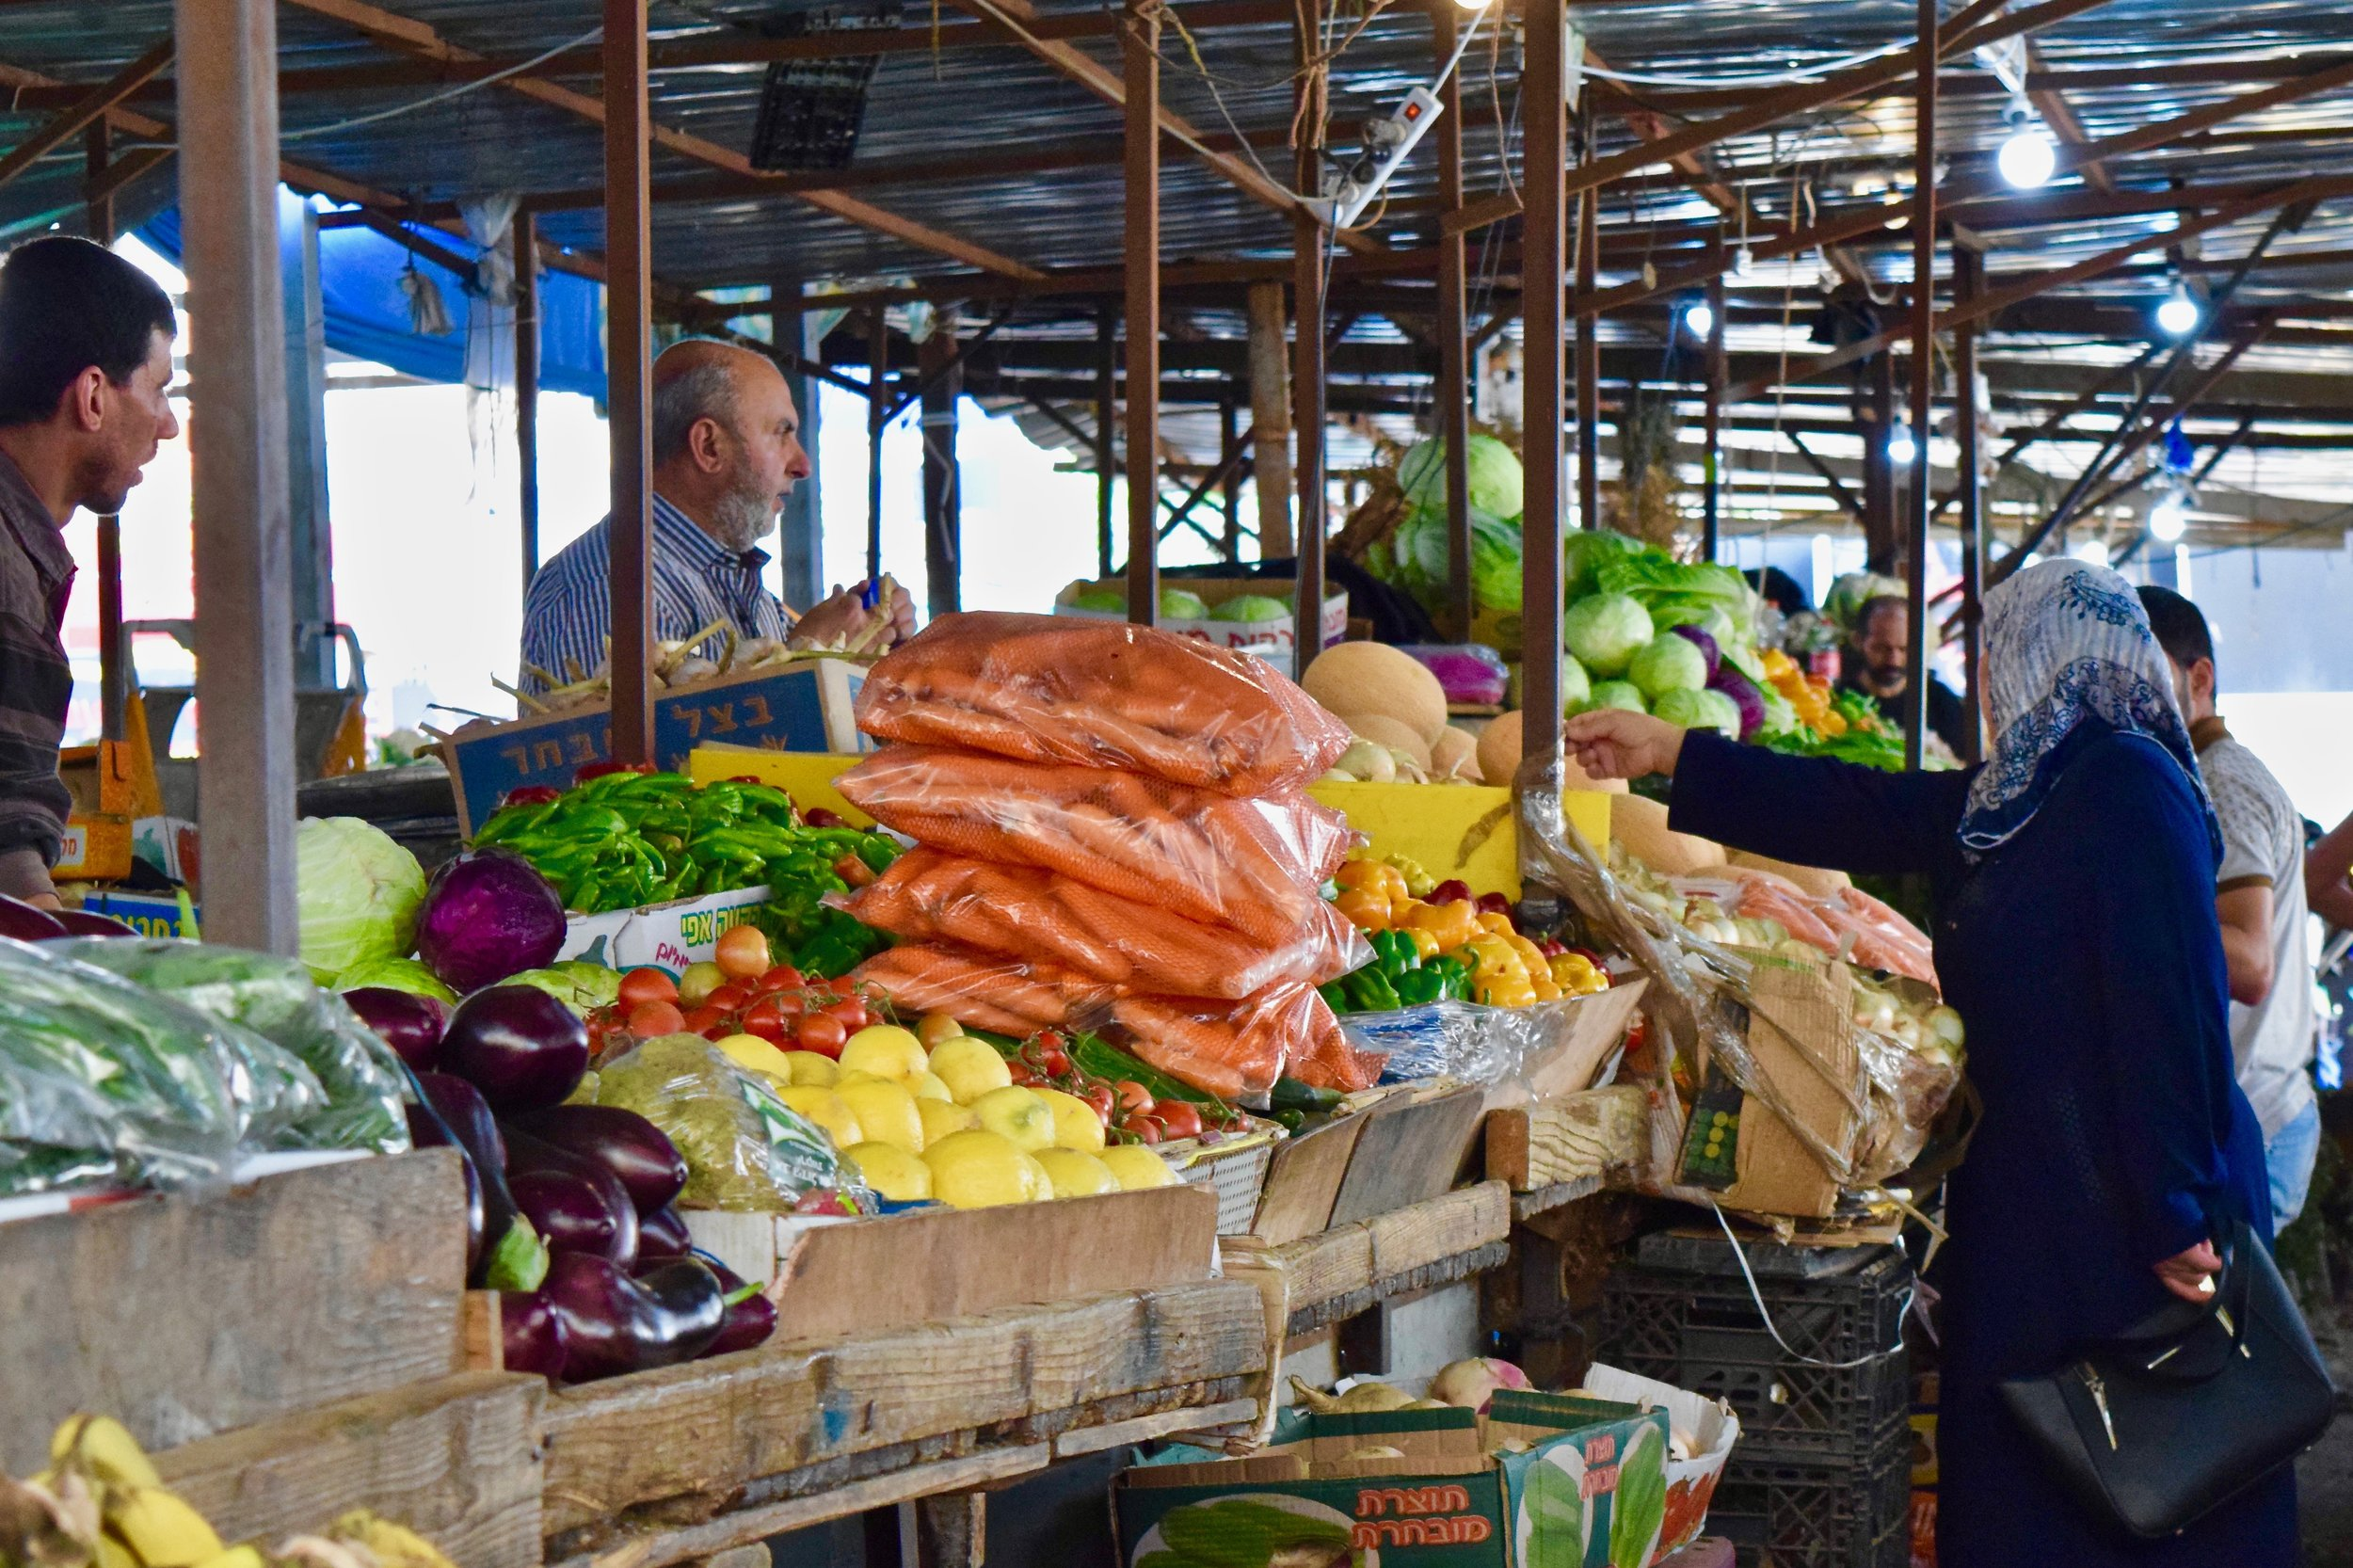 Local Palestinians in the market